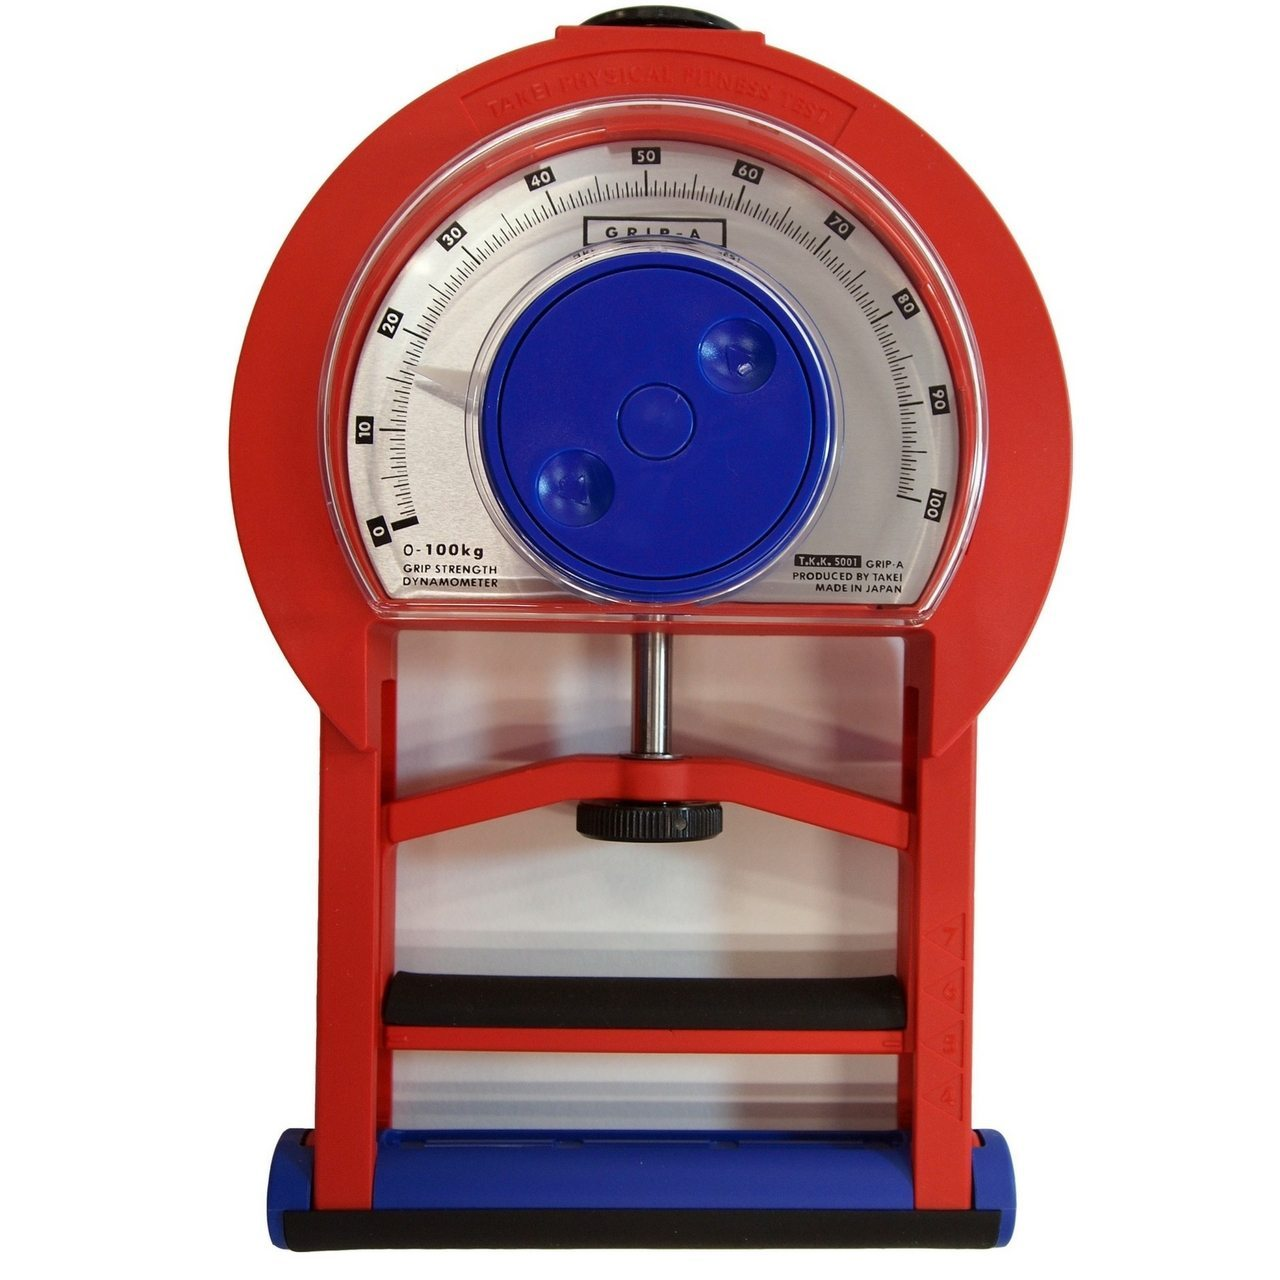 Hand Grip Dynamometer : Takei hand grip dynamometer analogue free delivery